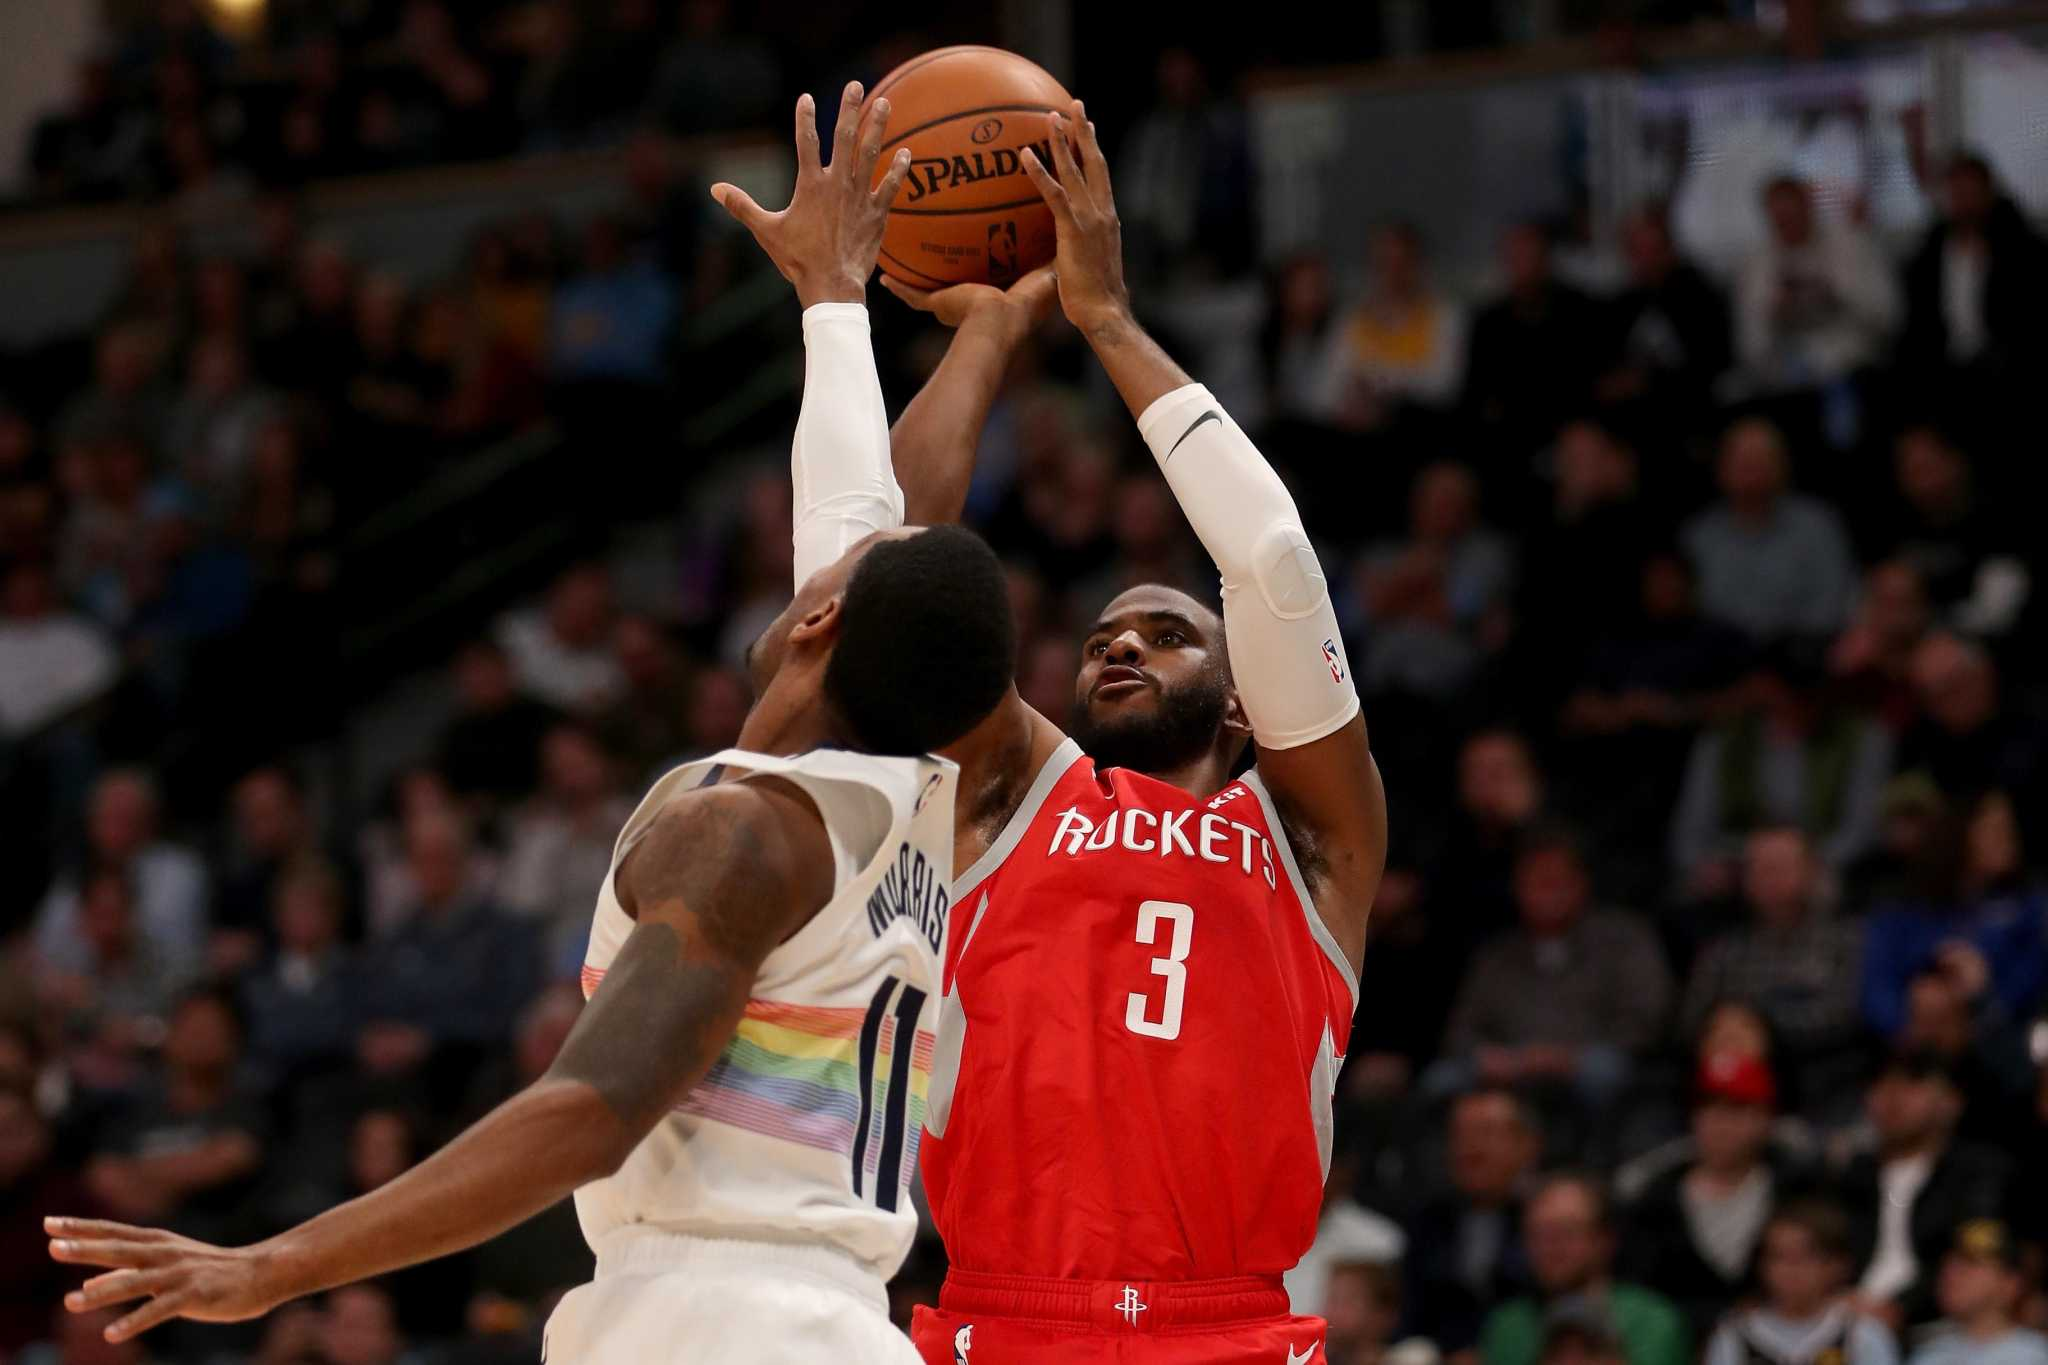 c7bd56a9f James Harden displays sharp passing and scoring skills in Rockets  win over  Nuggets